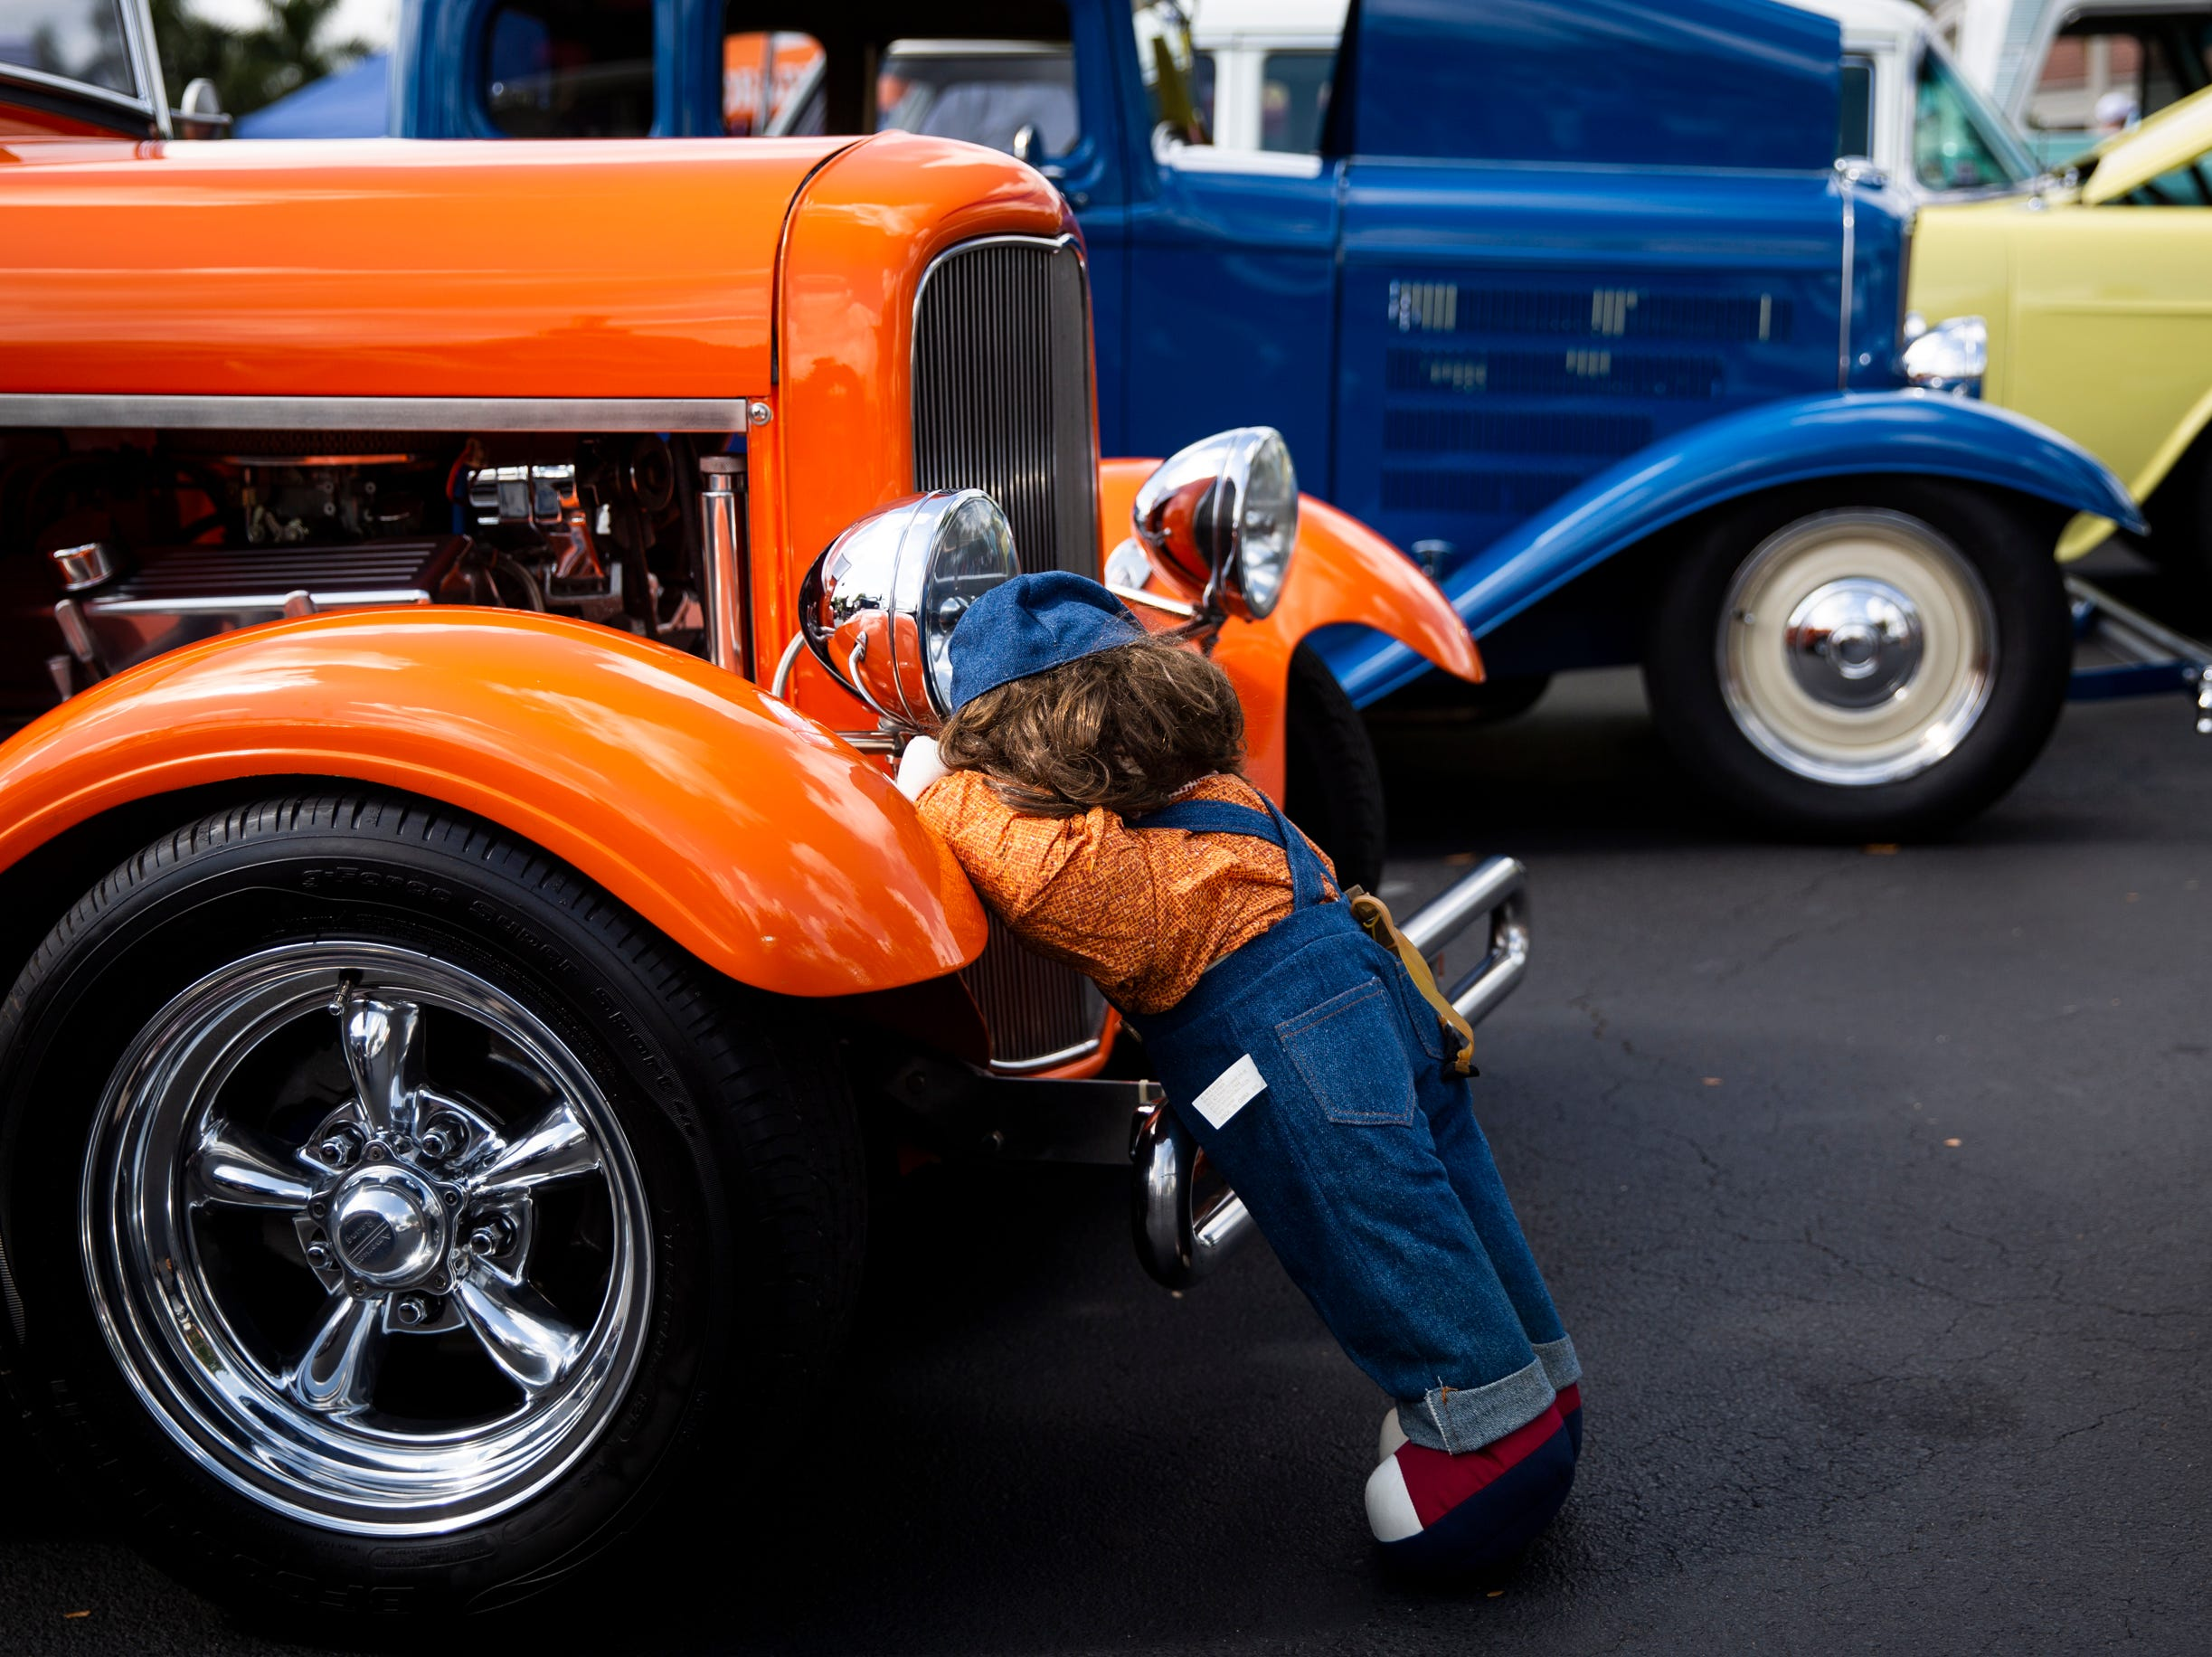 A plush mechanic leans on the front end of 1930 Ford Model A during the West Coast Muscle Car Club's 15th annual car and truck show at the Galleria Shoppes at Vanderbilt in North Naples on Sunday, March 10, 2019.